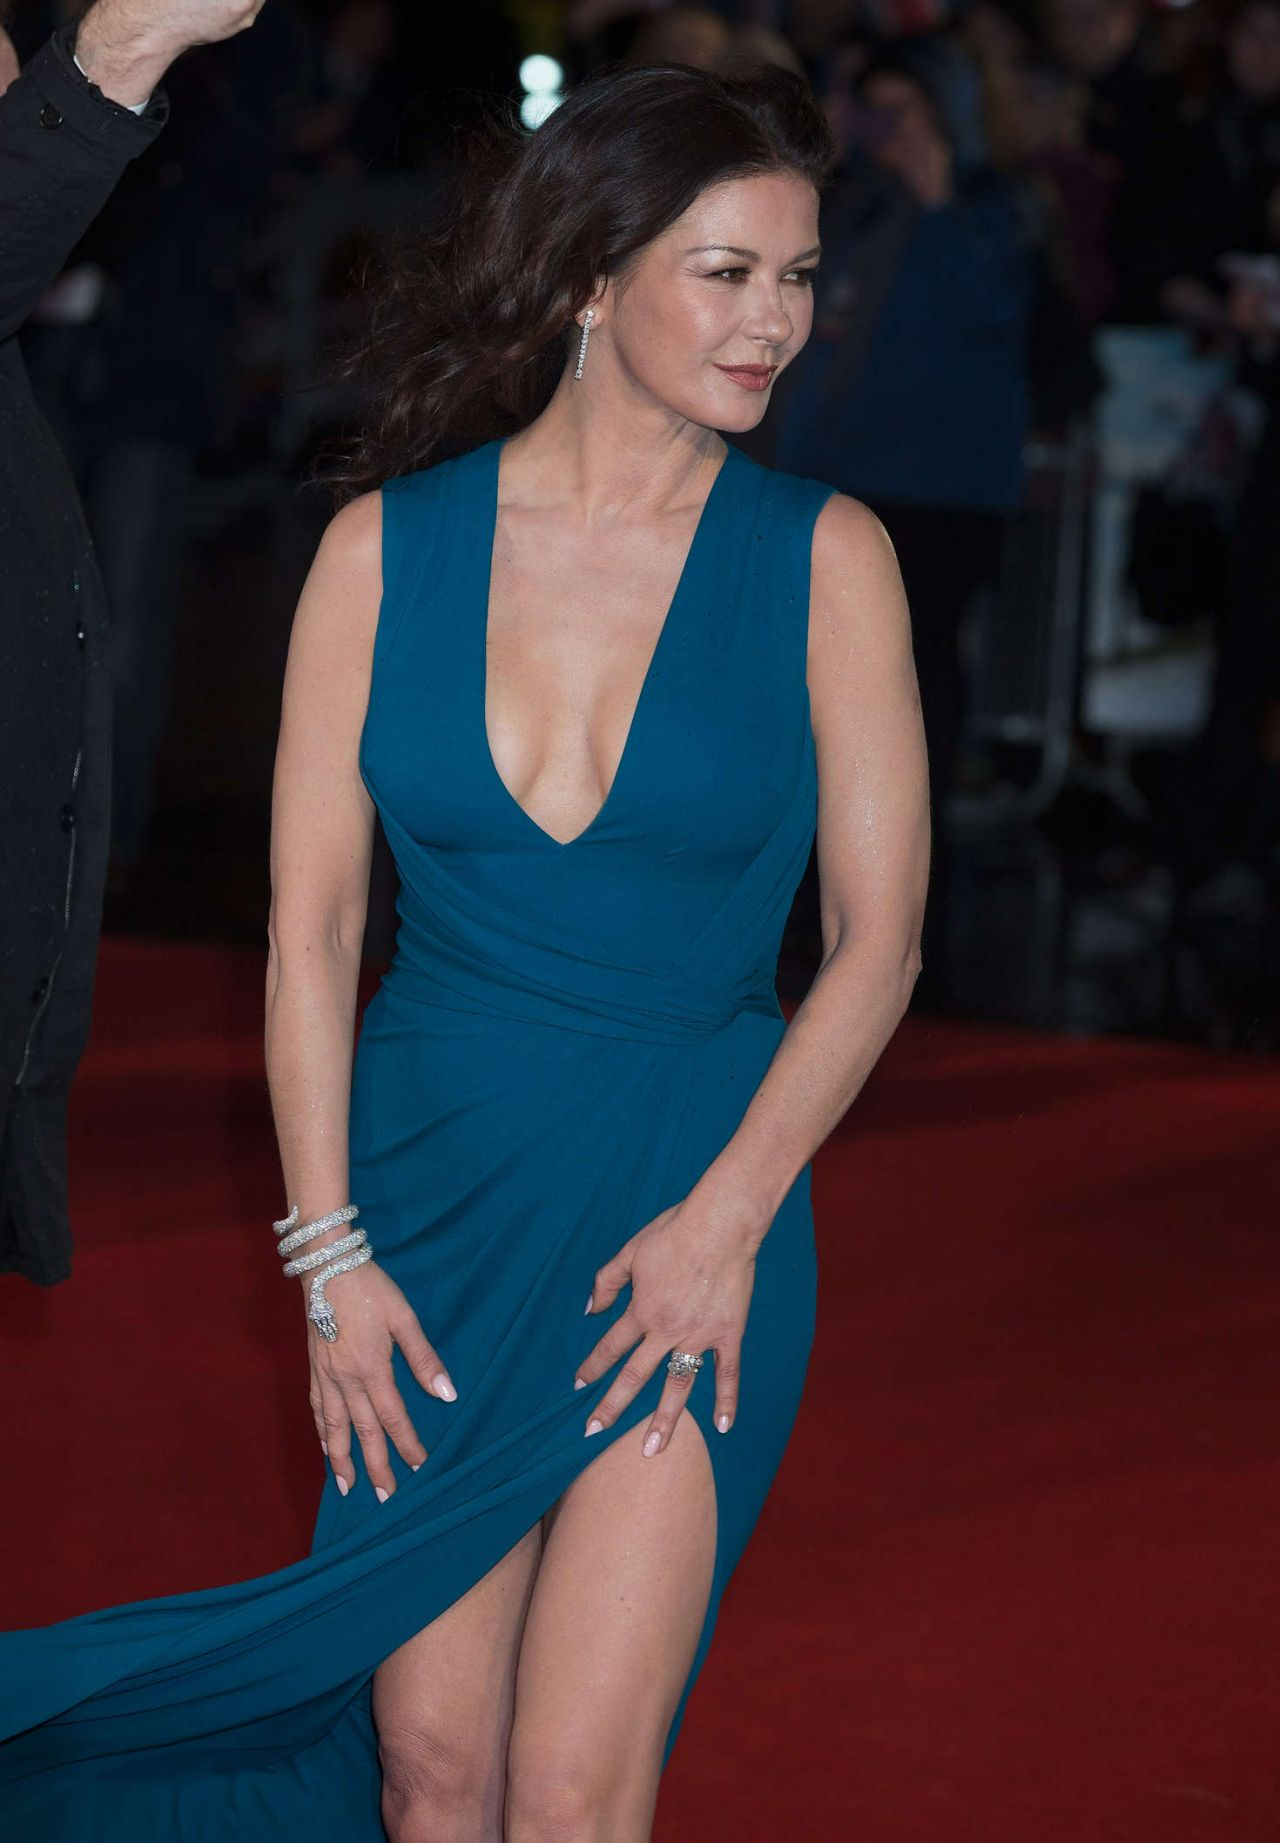 Catherine Zeta Jones – 'Dad's Army' FIlm Premiere in London Catherine Zeta Jones